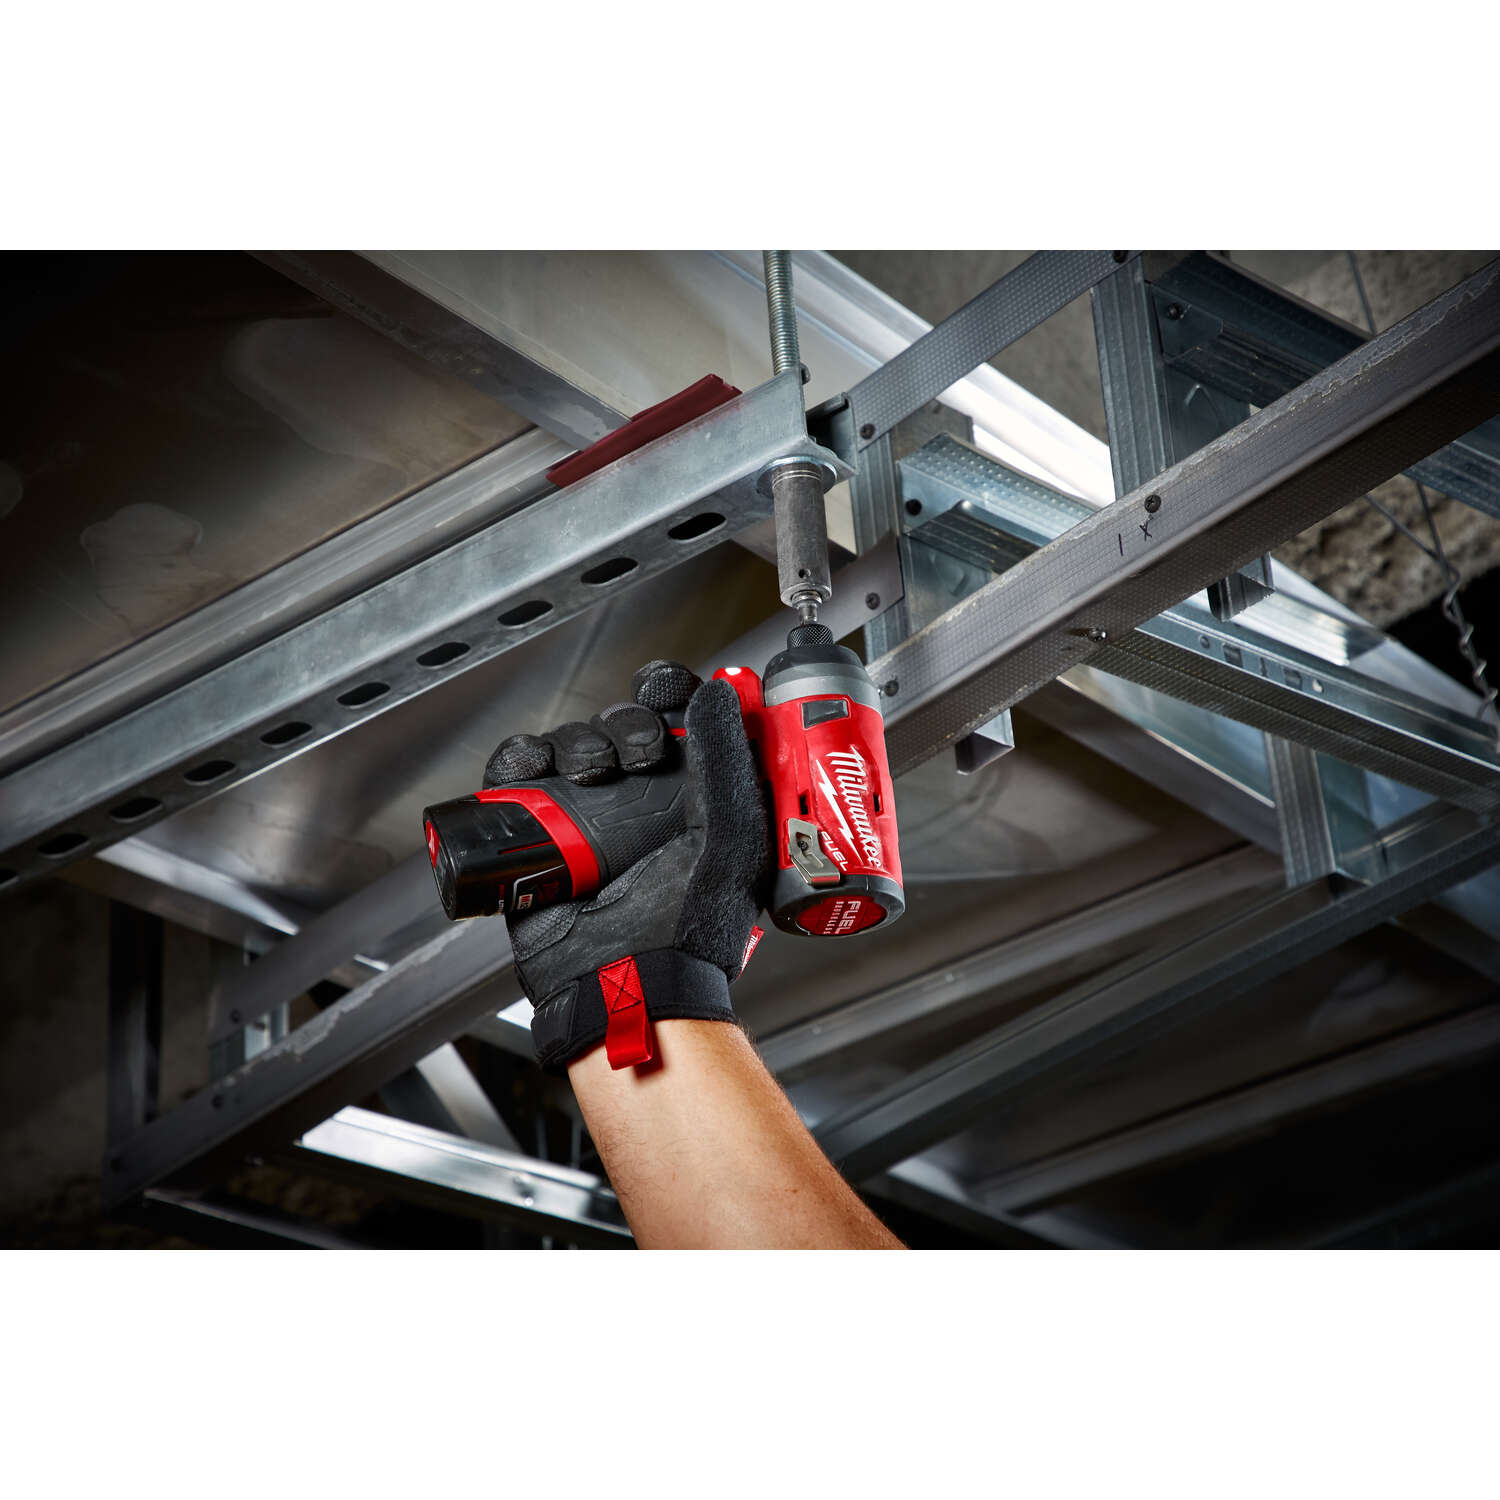 Milwaukee  M12 FUEL  12 volt 1/4 in. Brushless Brushless  Cordless Drill/Driver  3300 rpm 4 speed